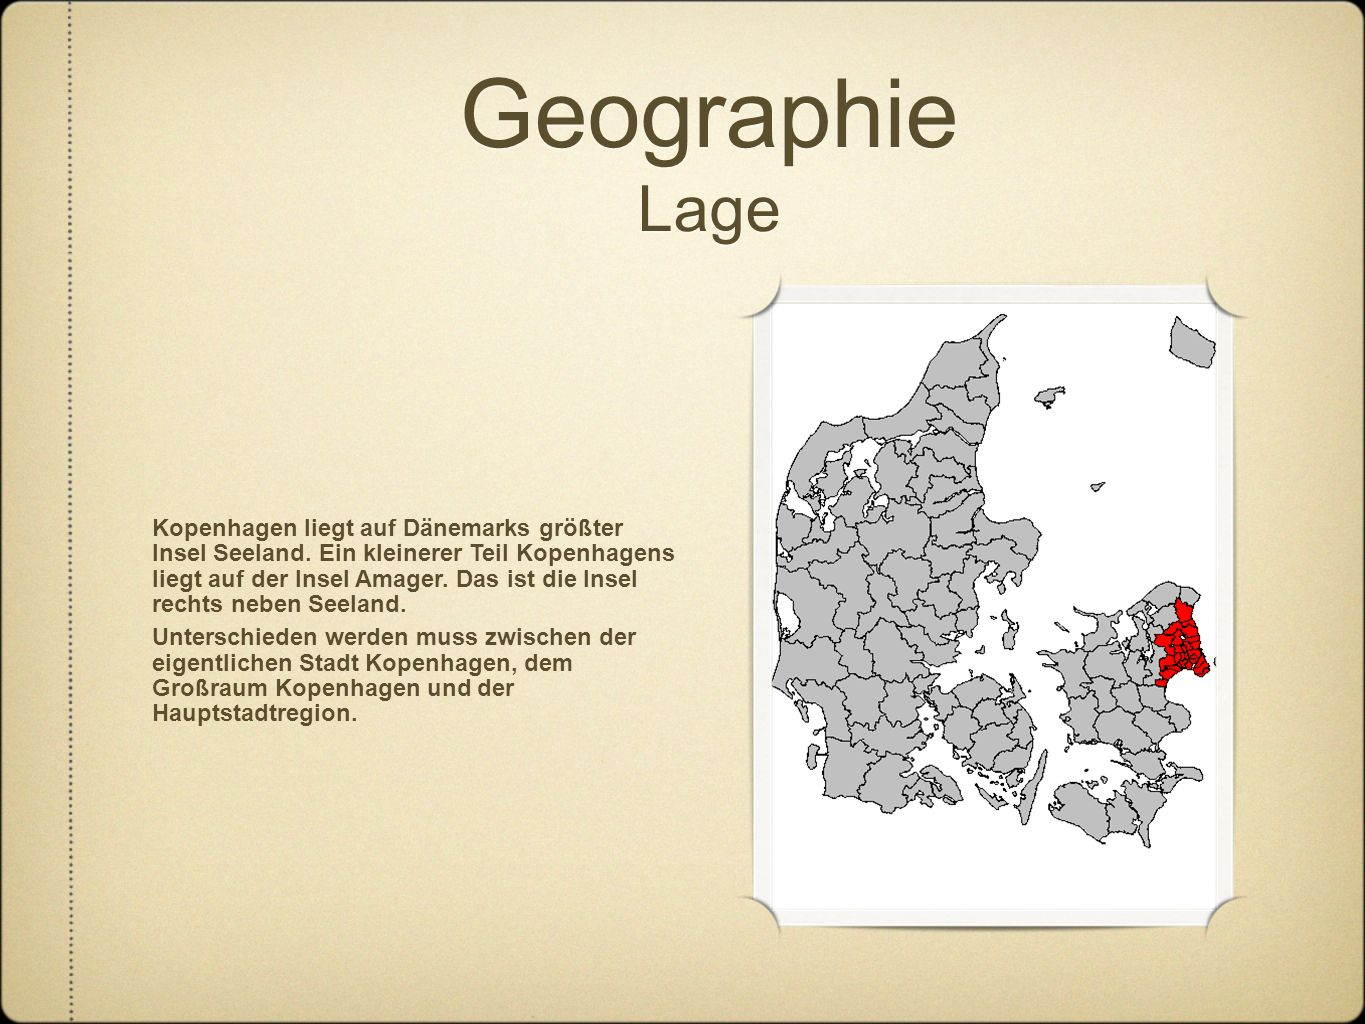 Geographie Lage